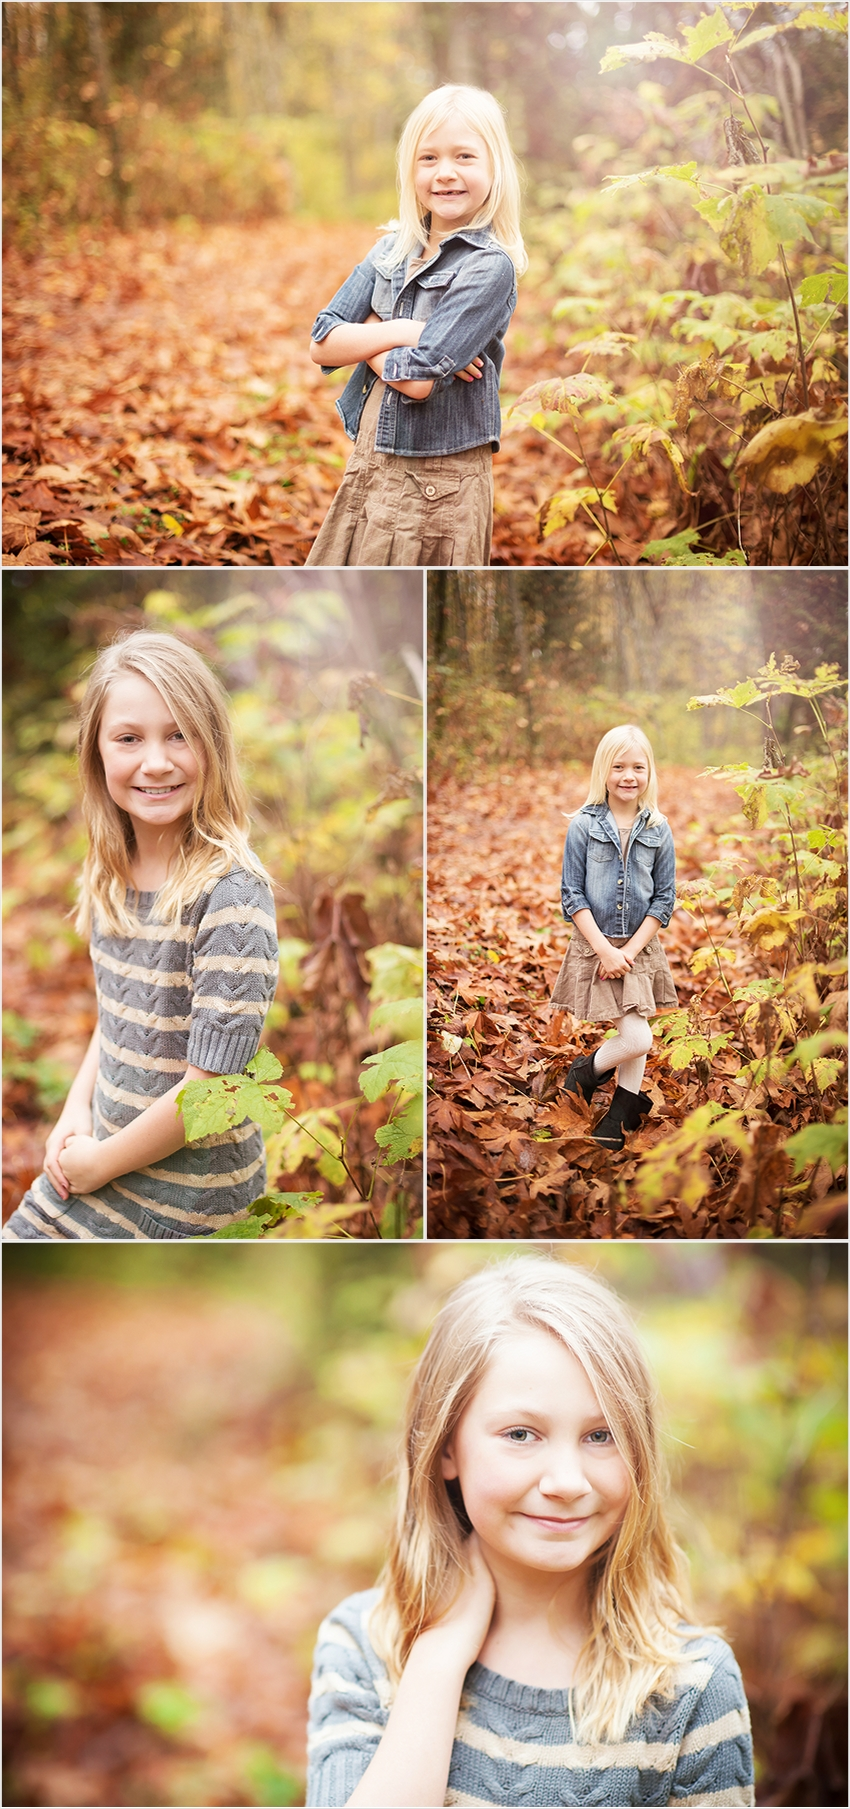 abbotsford-family-maternity-photographer-006-side-6